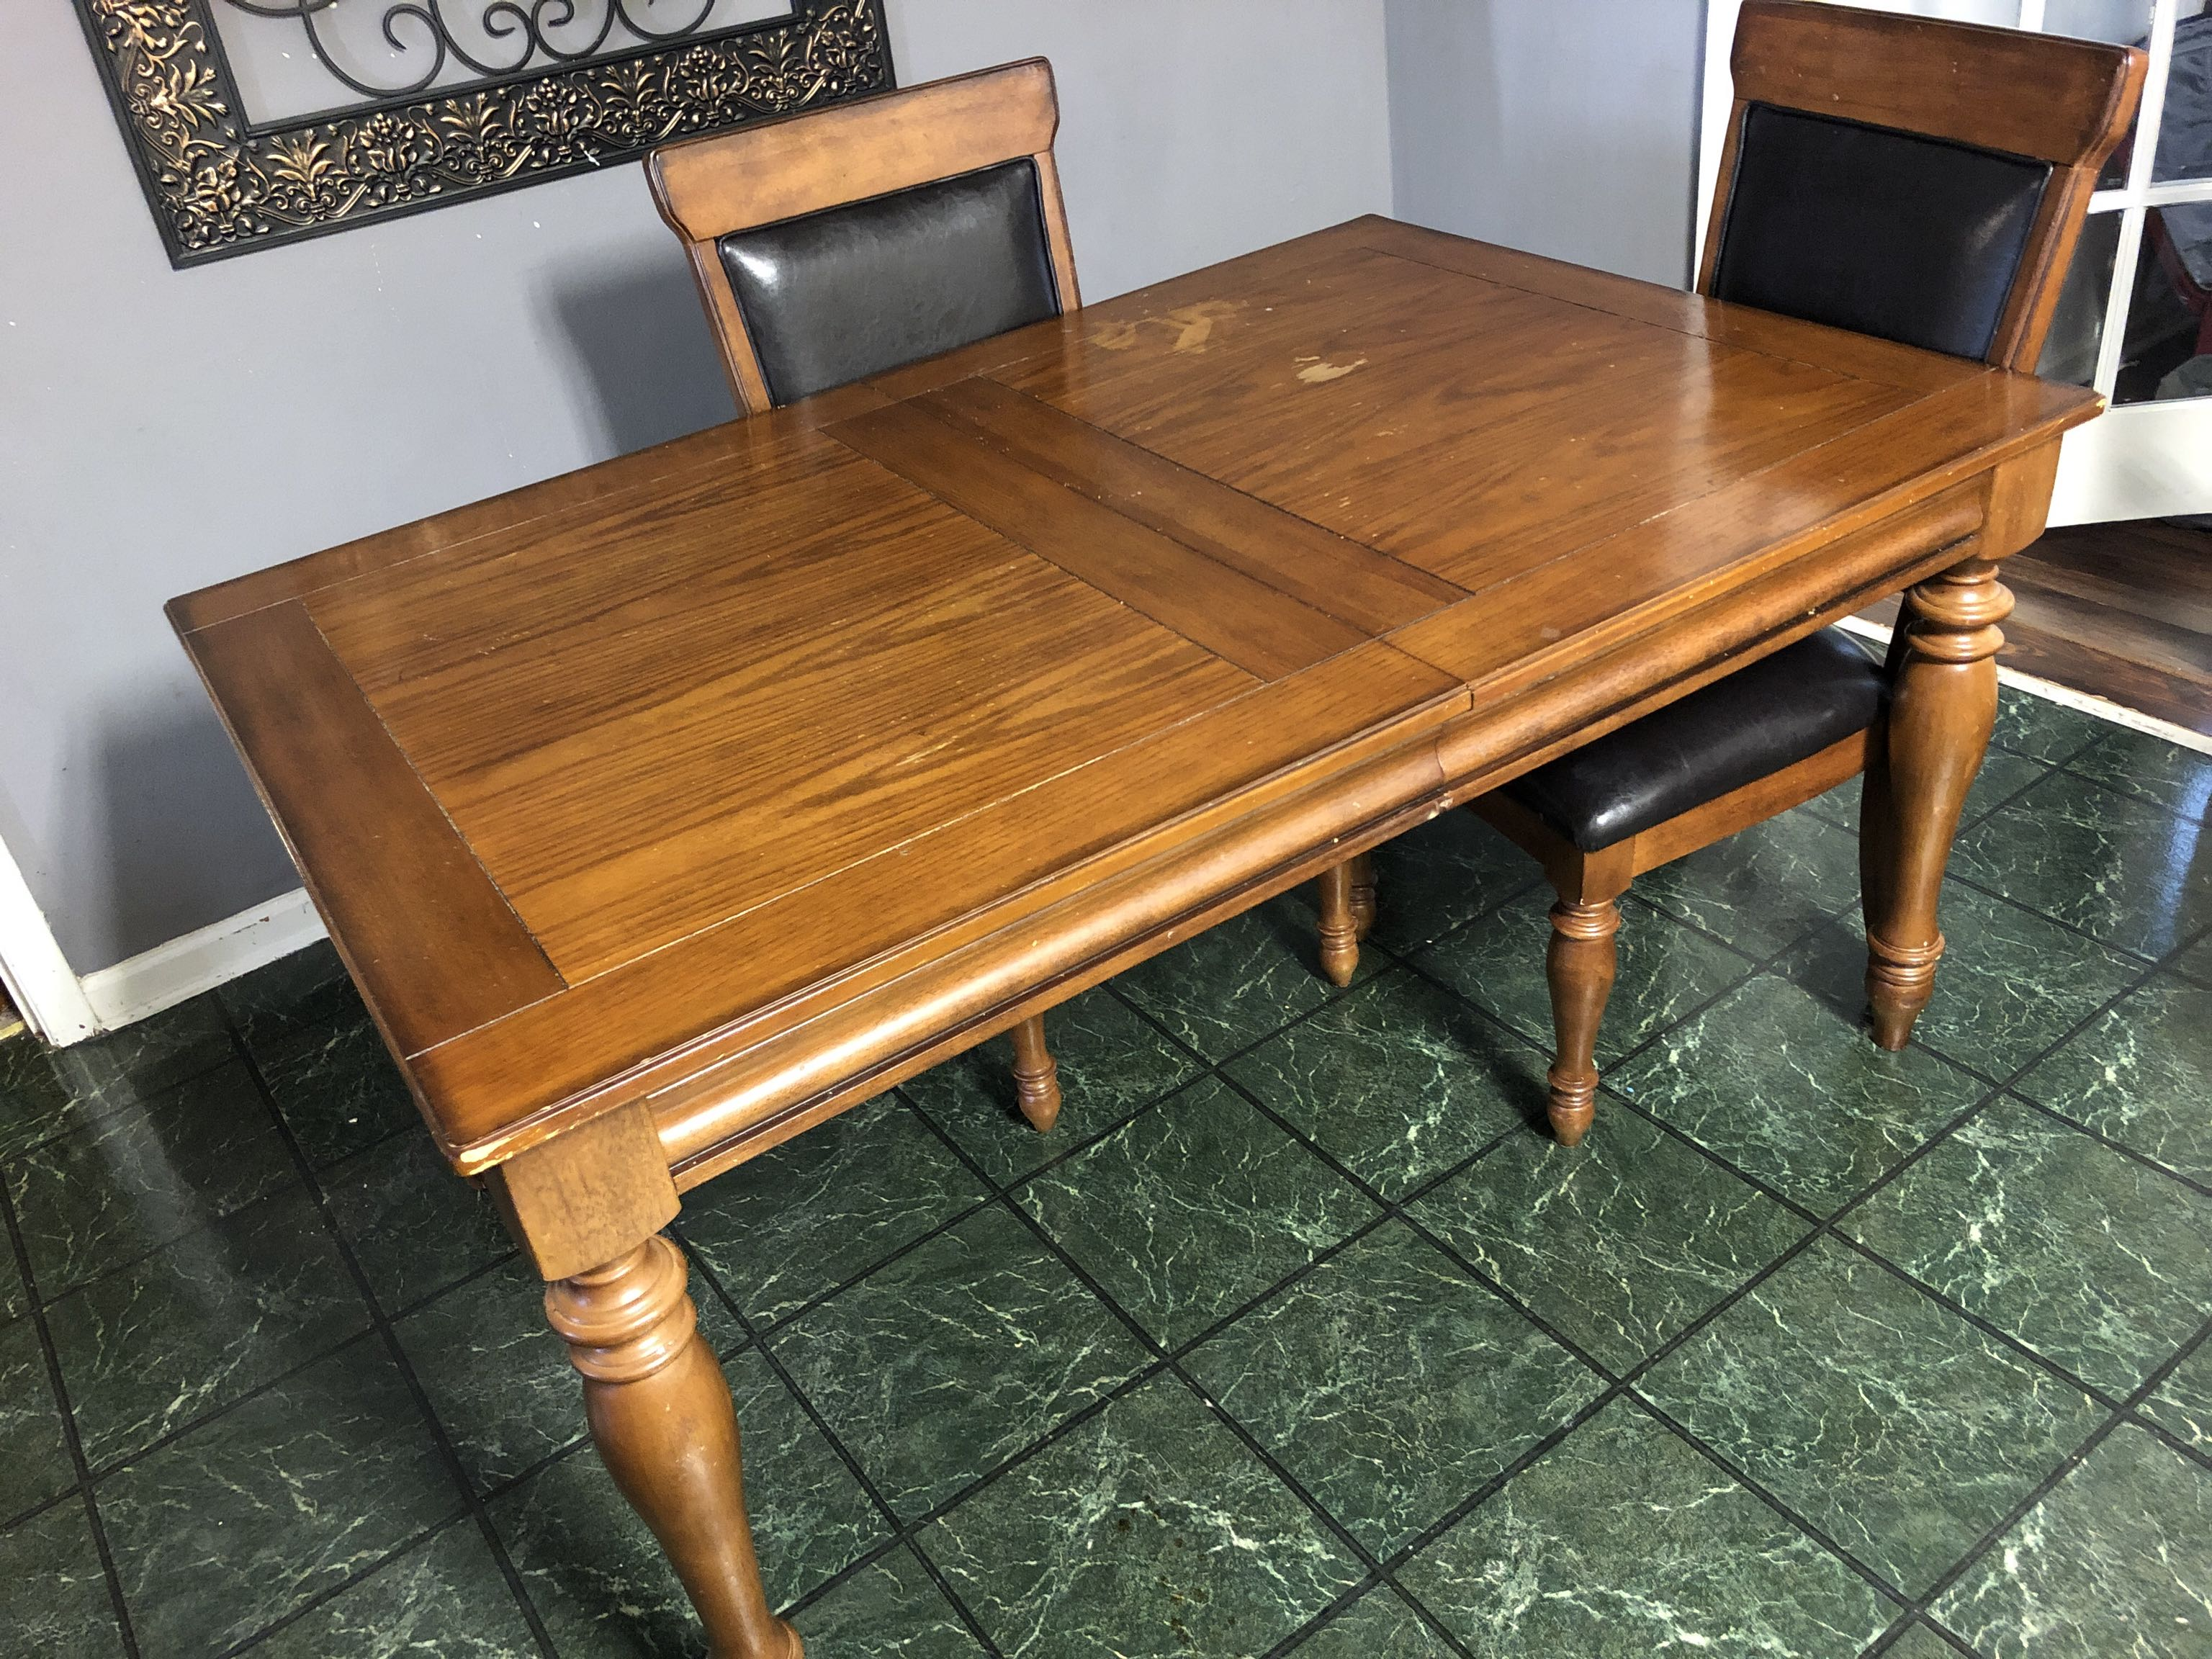 Kitchen table for sale.